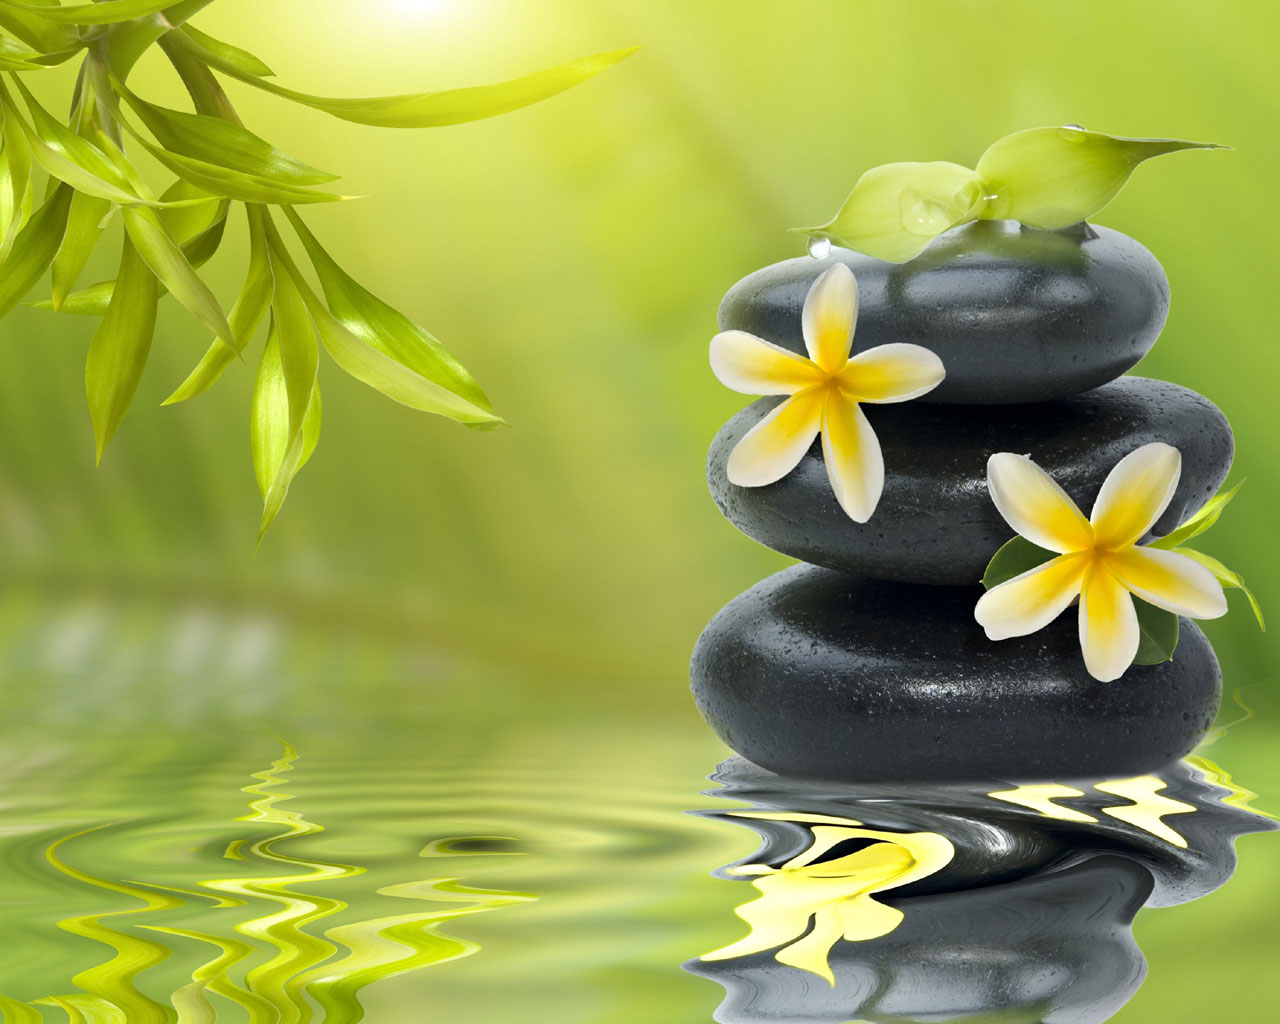 Zen Meditation Wallpaper Zen Meditation hd Wallpaper 1280x1024